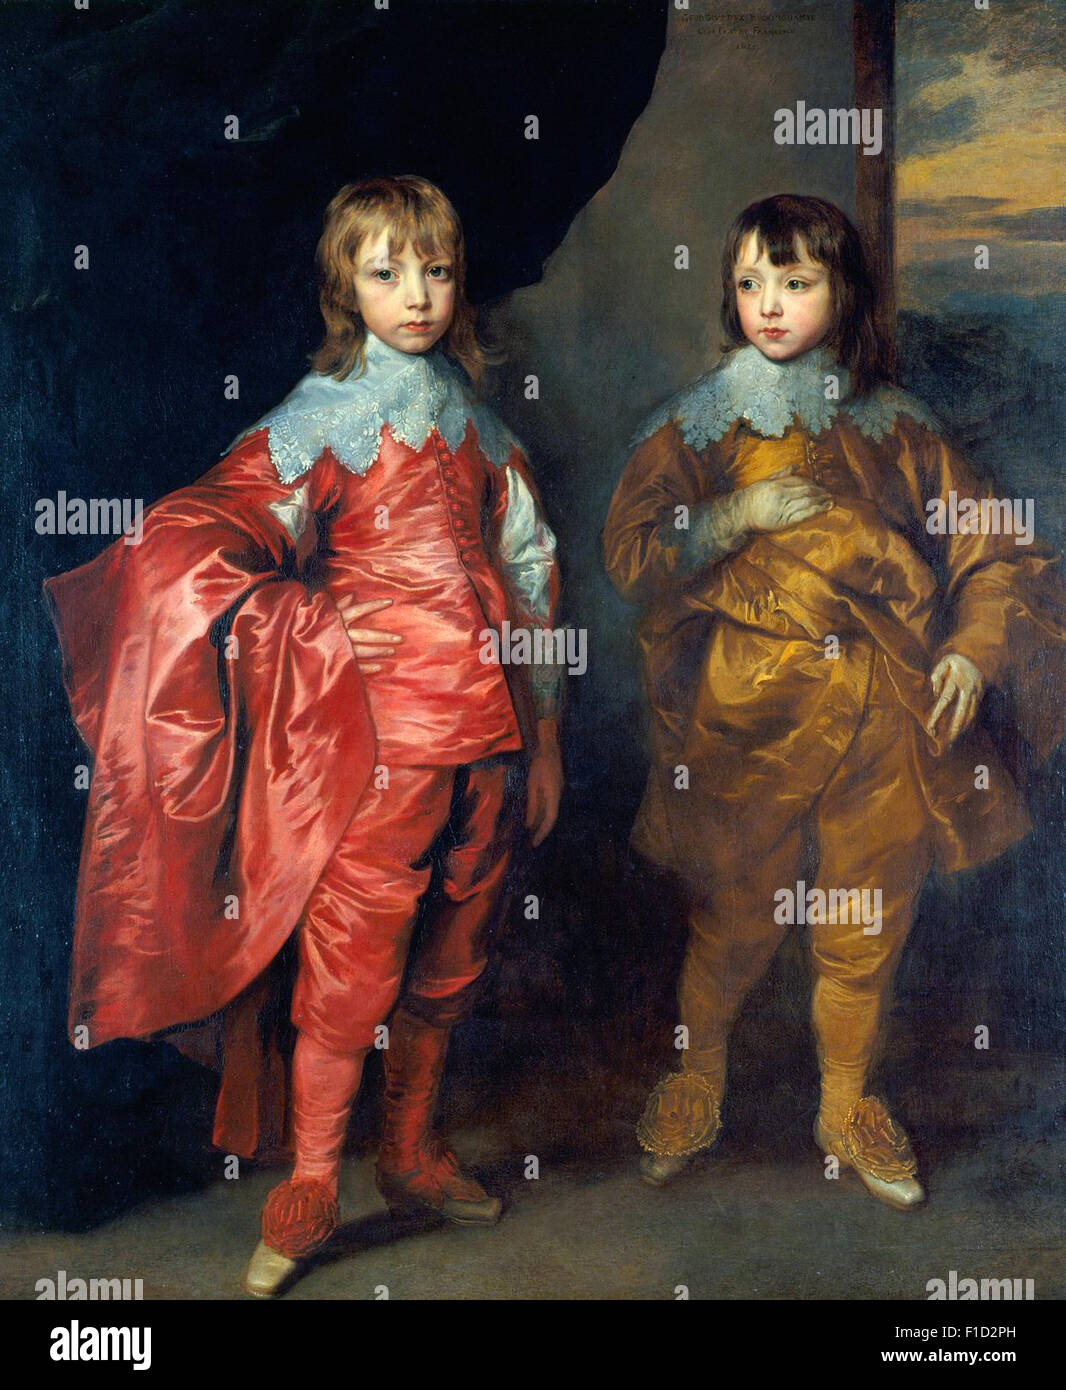 Anthony Van Dyck - George Villiers, 2nd Duke of Buckingham, and Lord Francis Villiers - Stock Image